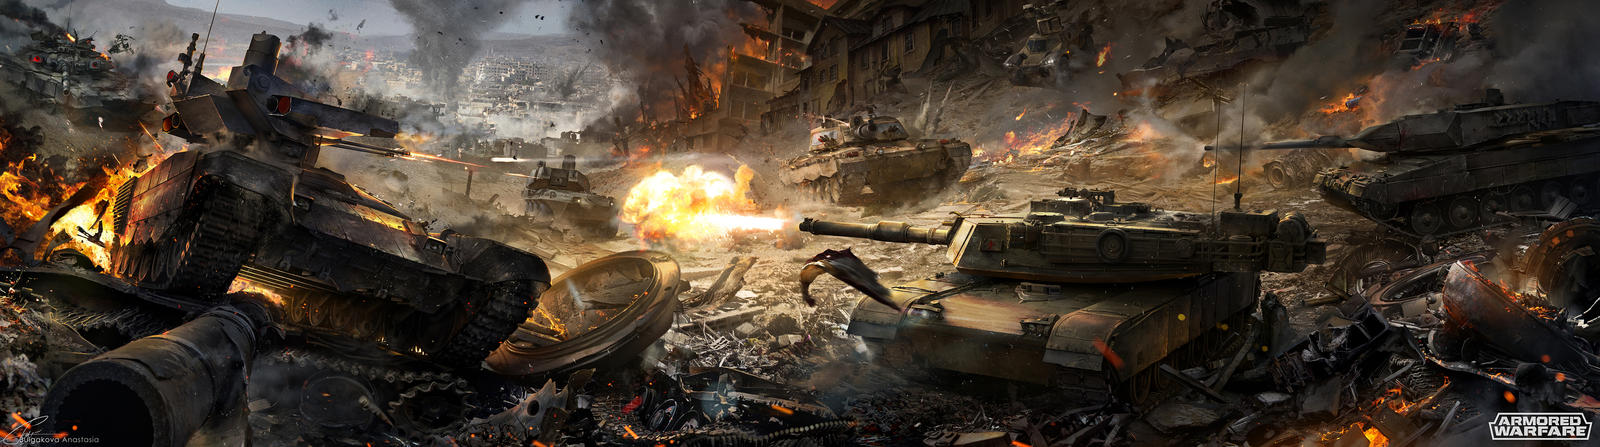 Tank battle by Sinto-risky